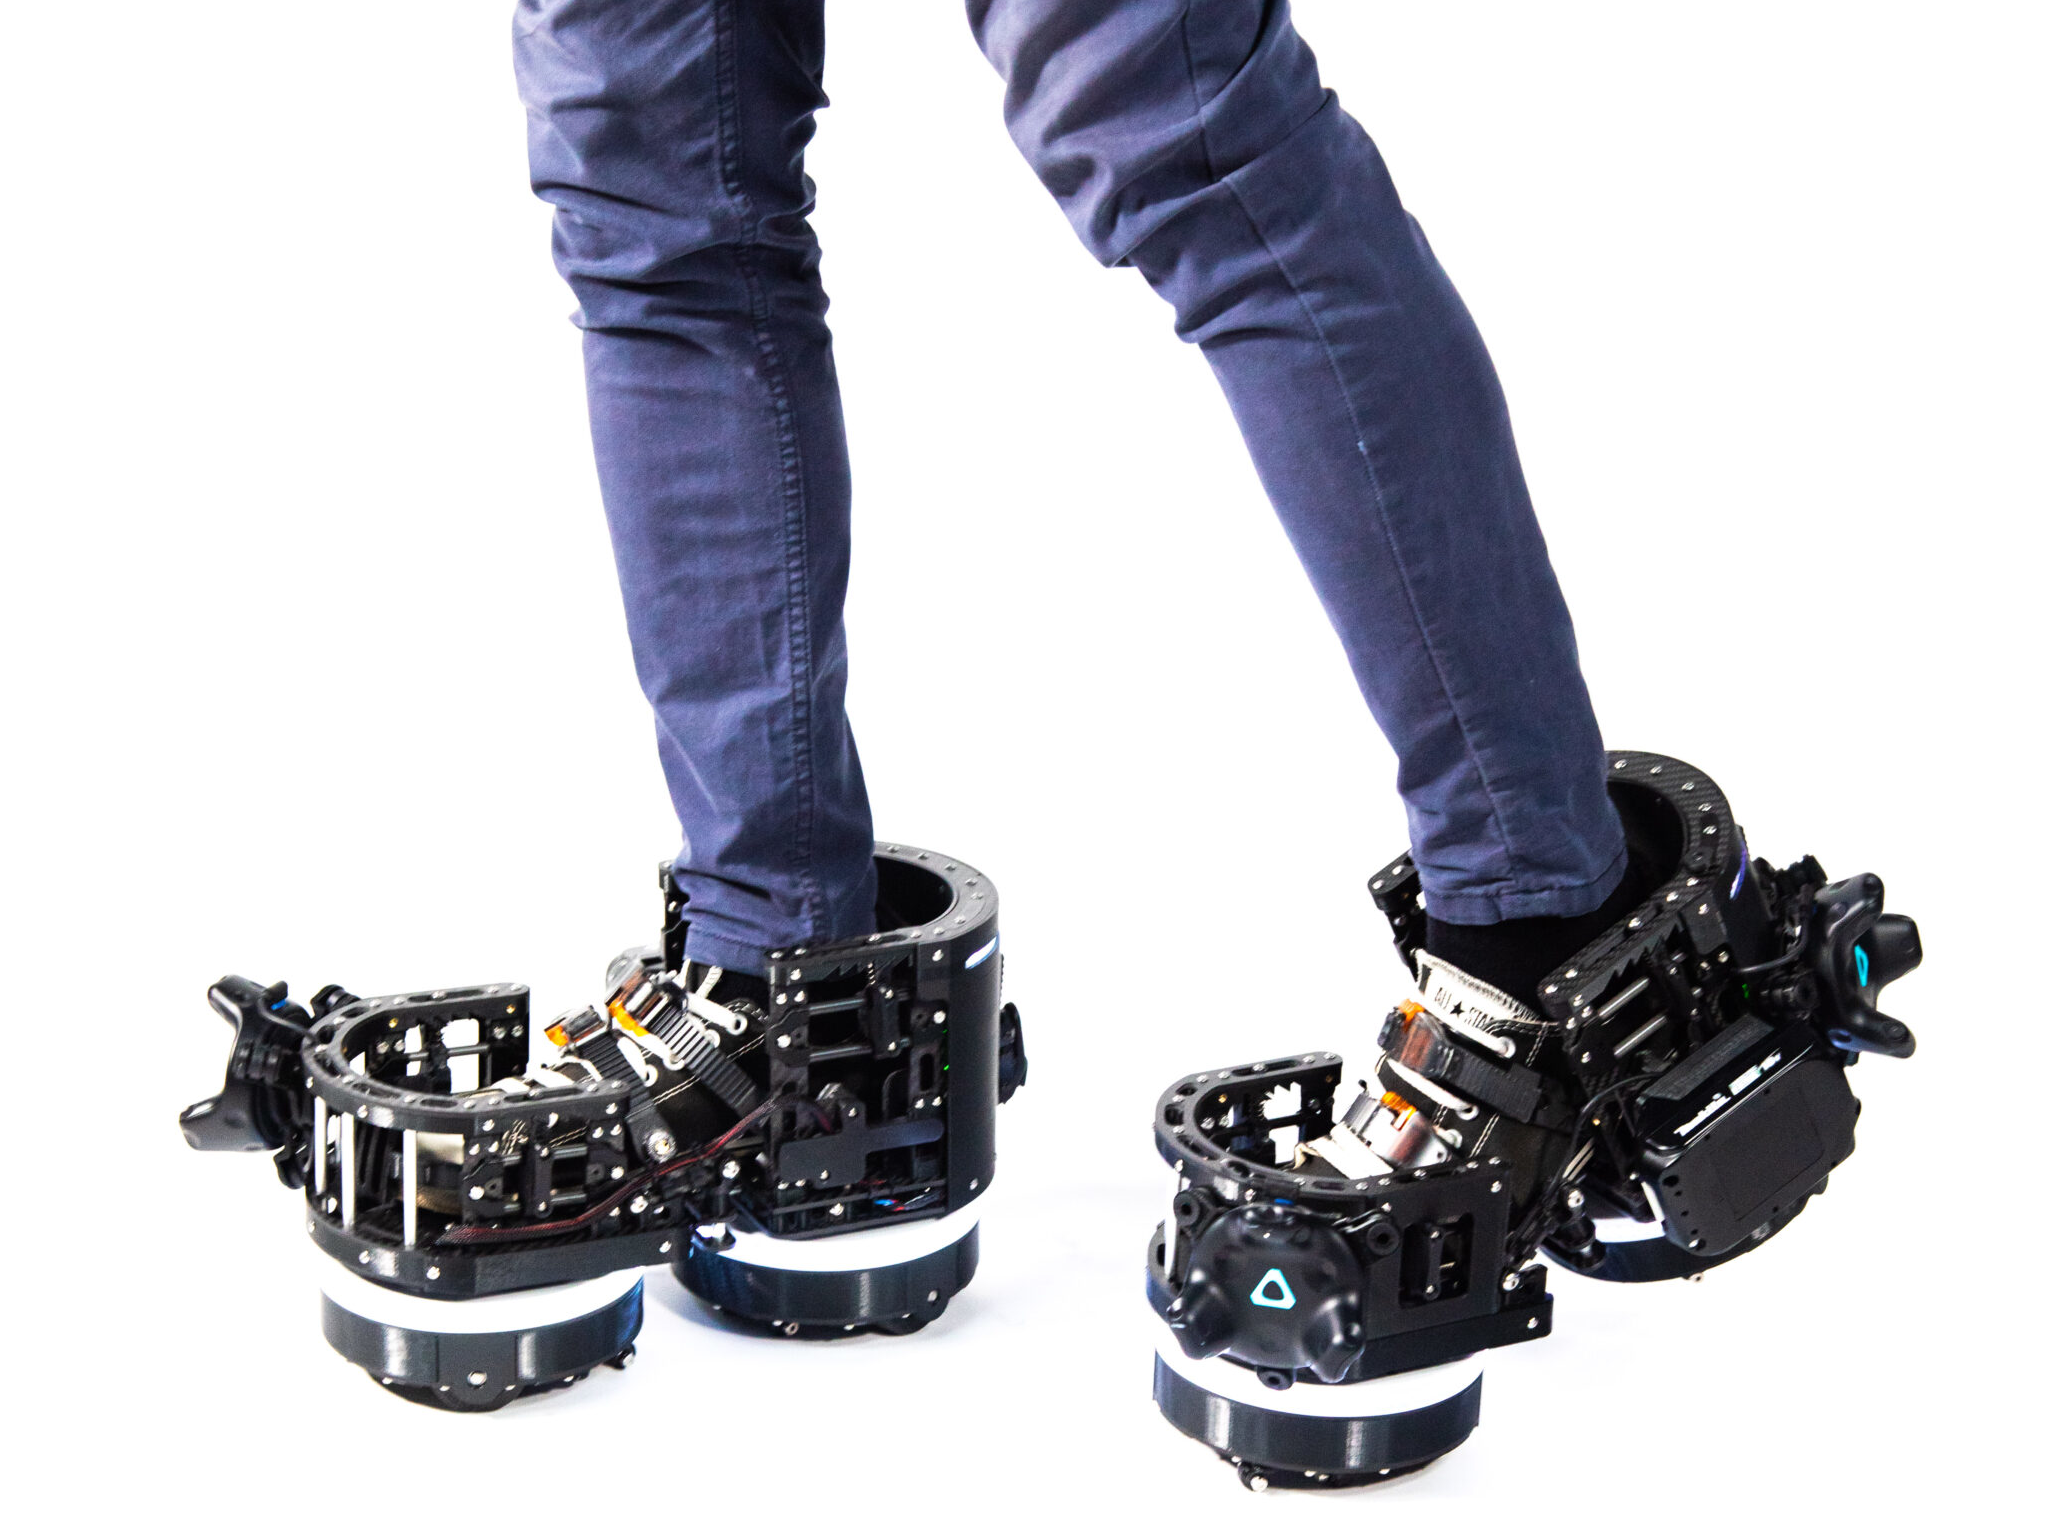 independent.co.uk - Adam Smith - New virtual reality boots let gamers walk around video games